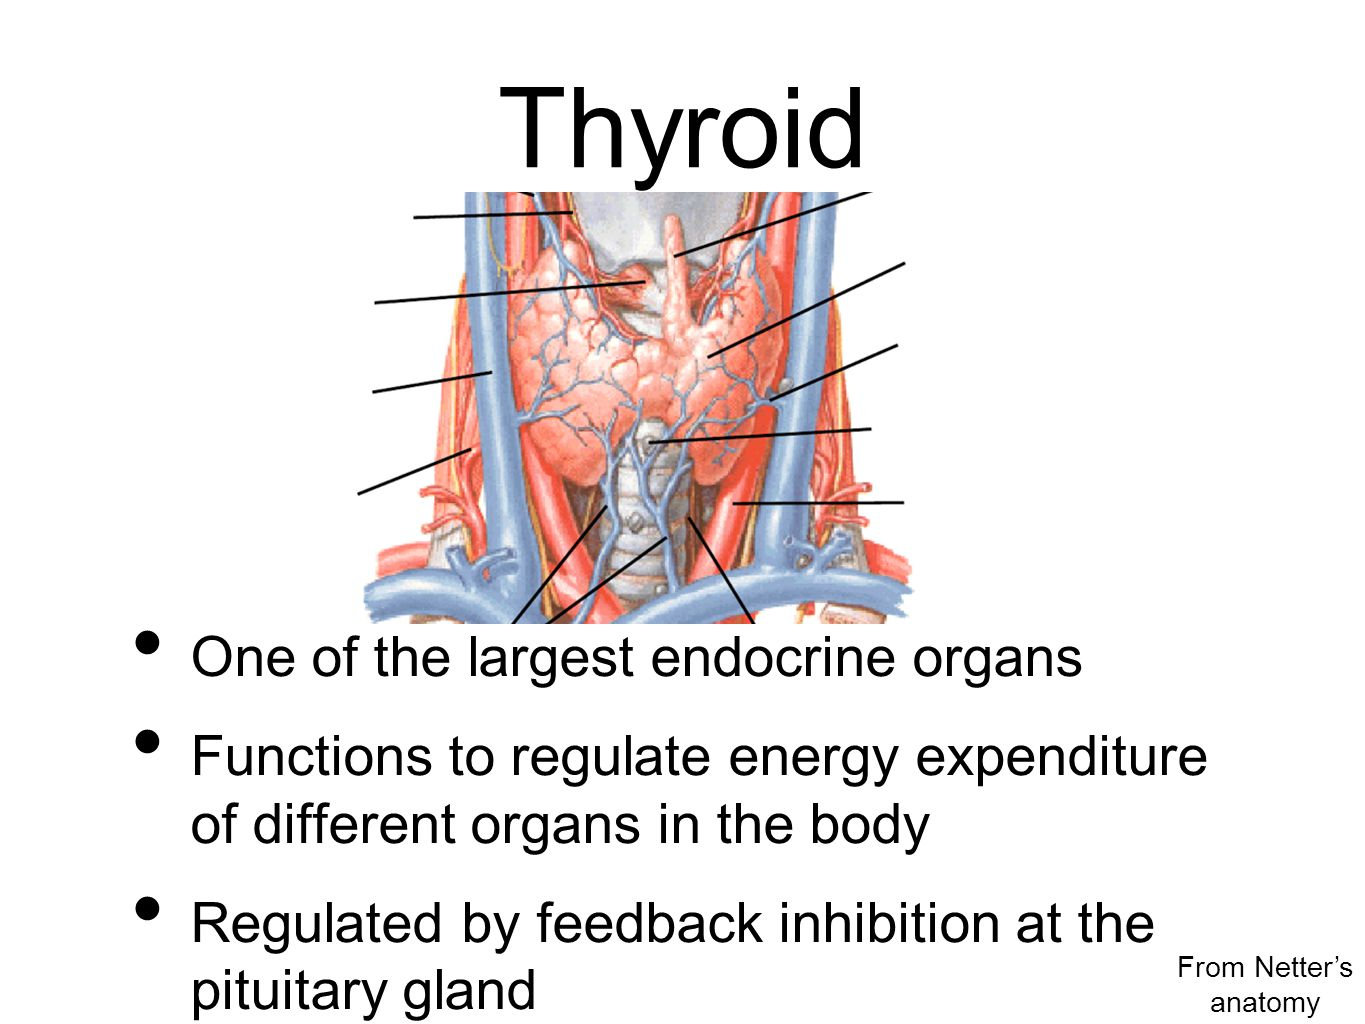 Thyroid One of the largest endocrine organs